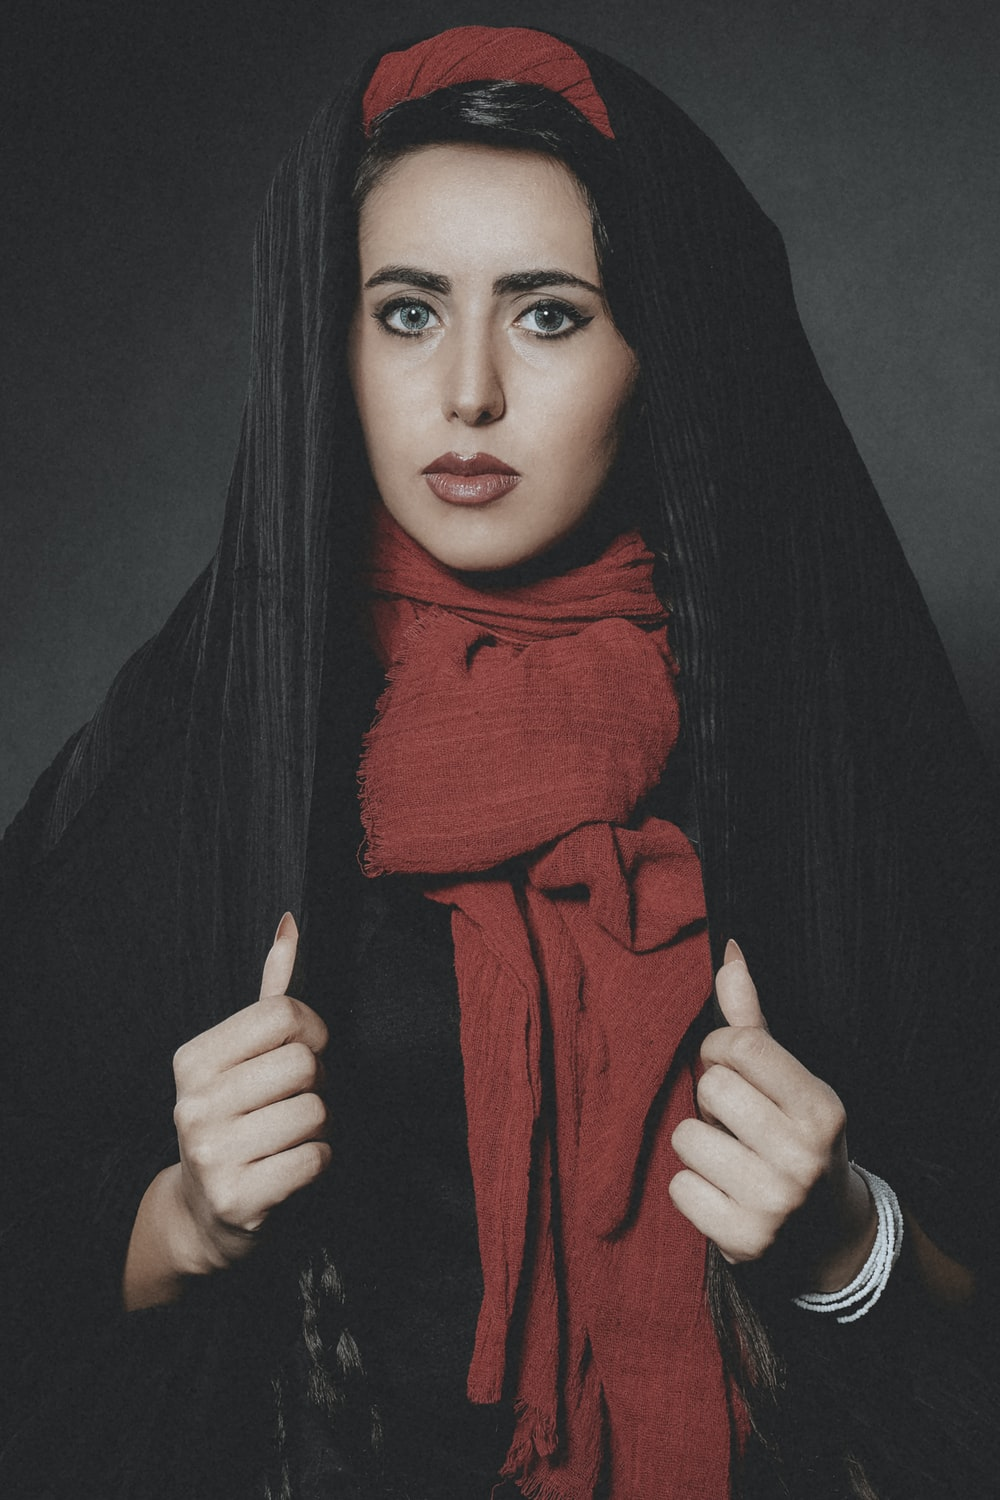 woman in red hijab and black long sleeve shirt